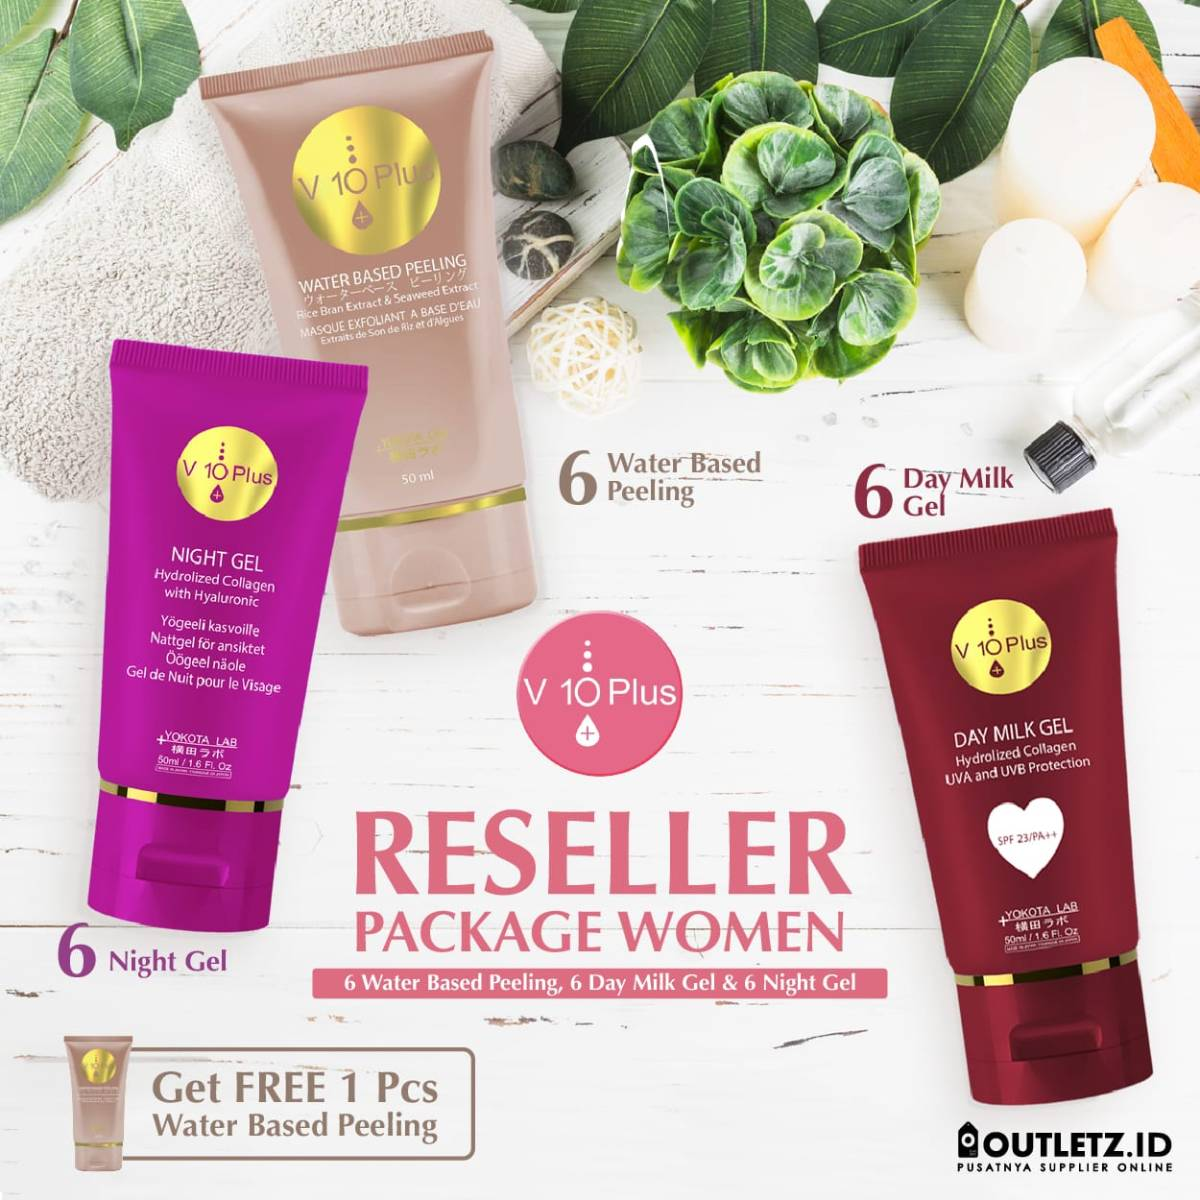 V10 Plus Women Reseller Package